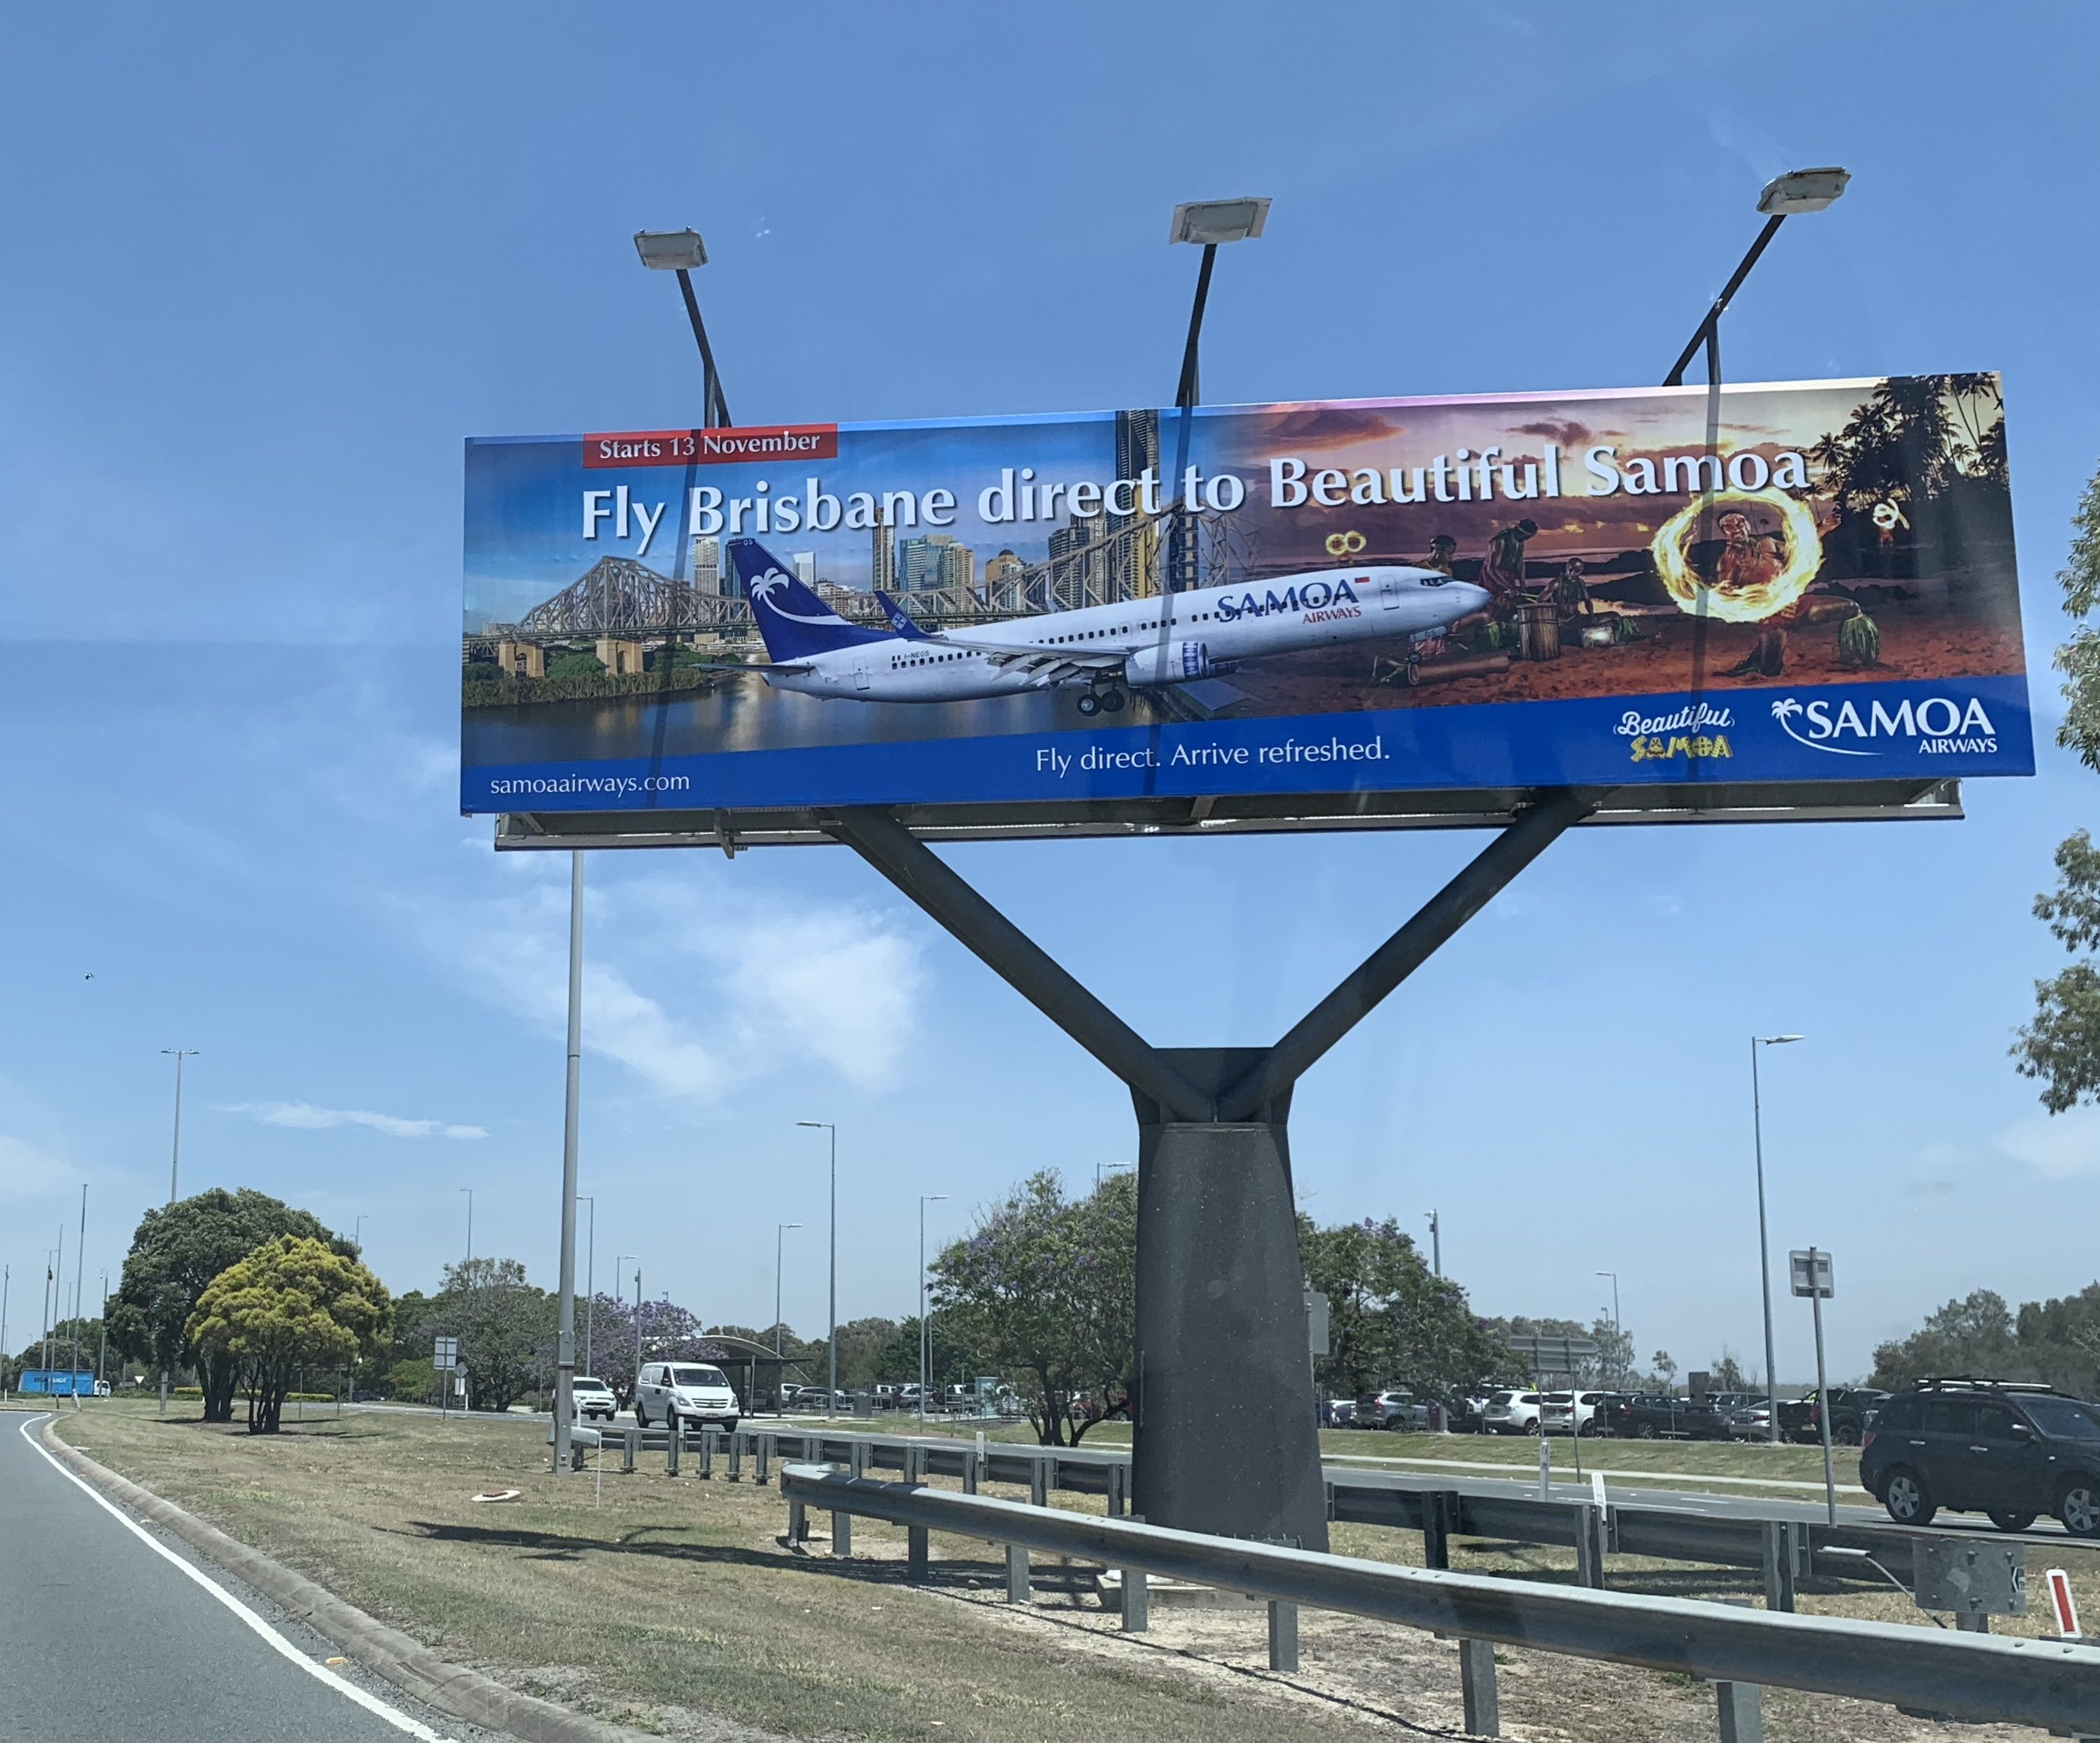 Samoa Airways billboard at Brisbane Airport promoting the new direct service to Beautiful Samoa (Credit - Philip Warth)